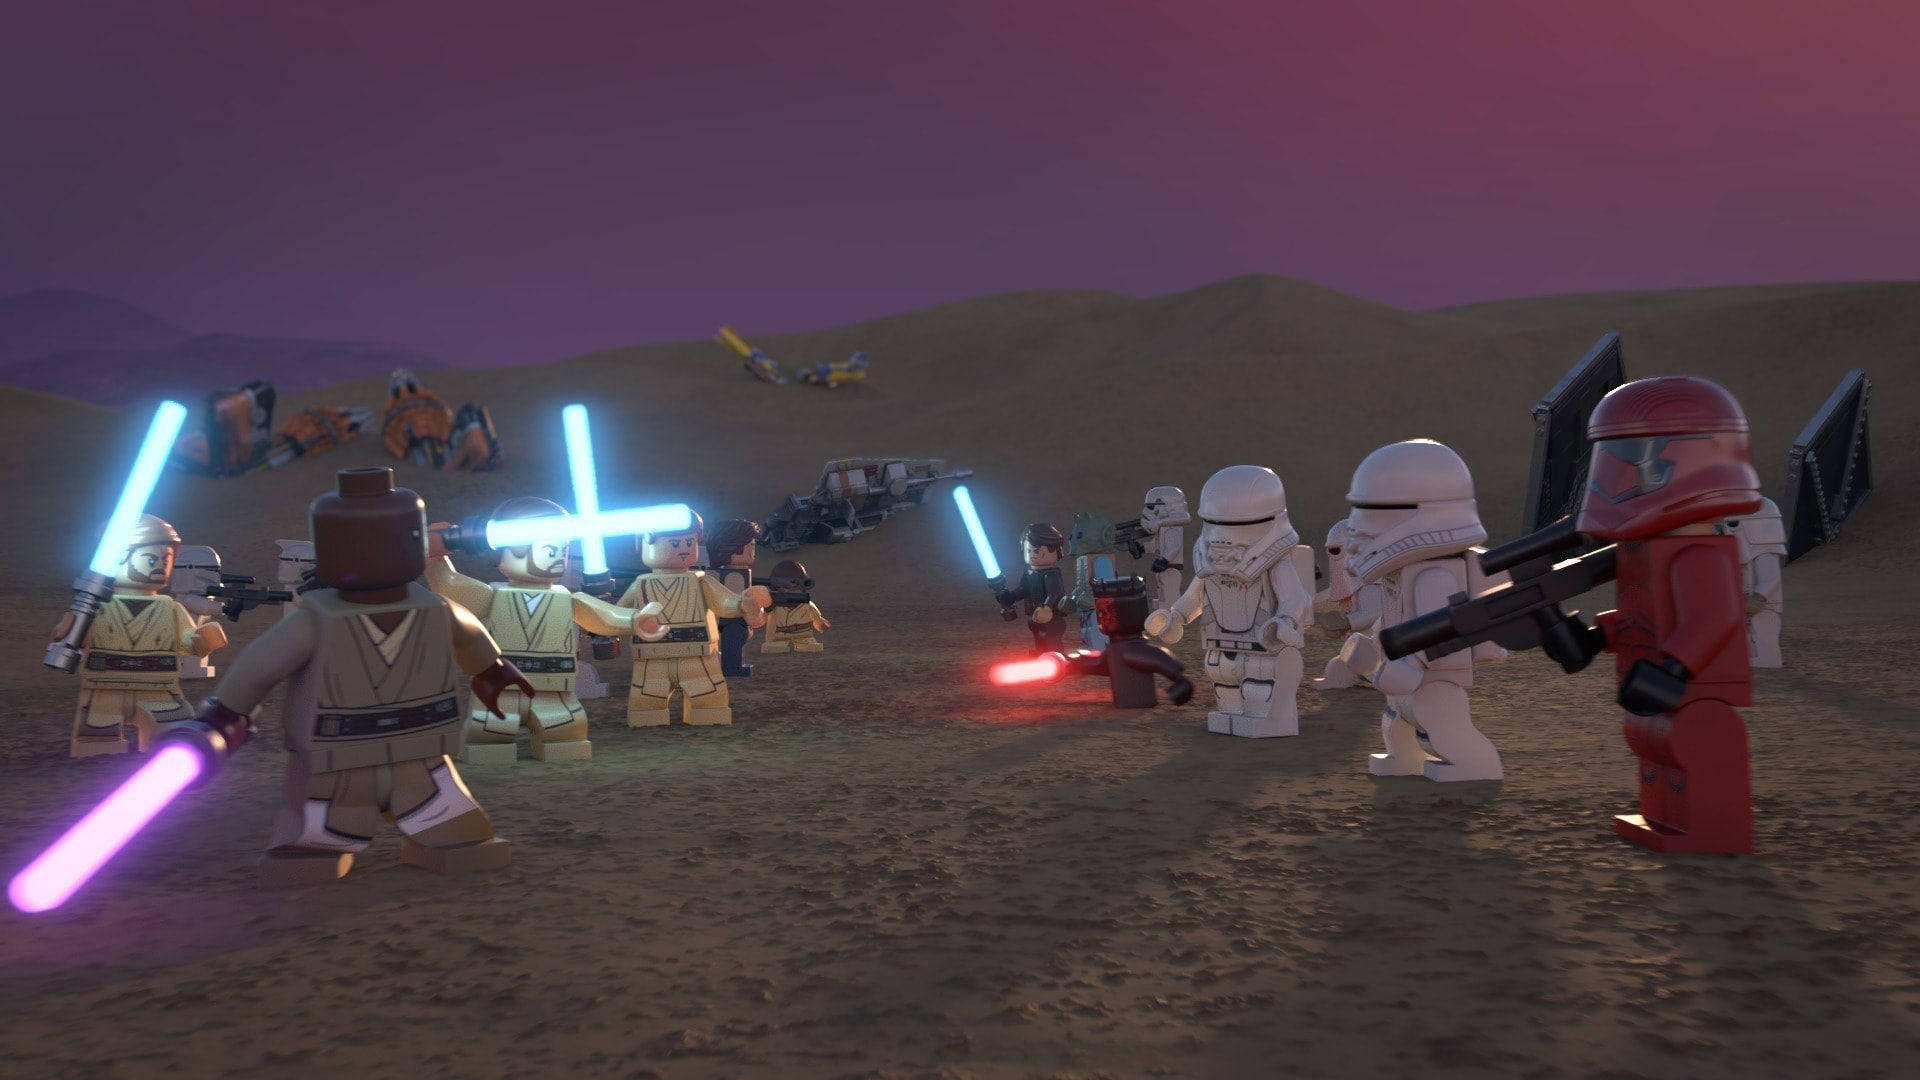 lego-star-wars-holiday